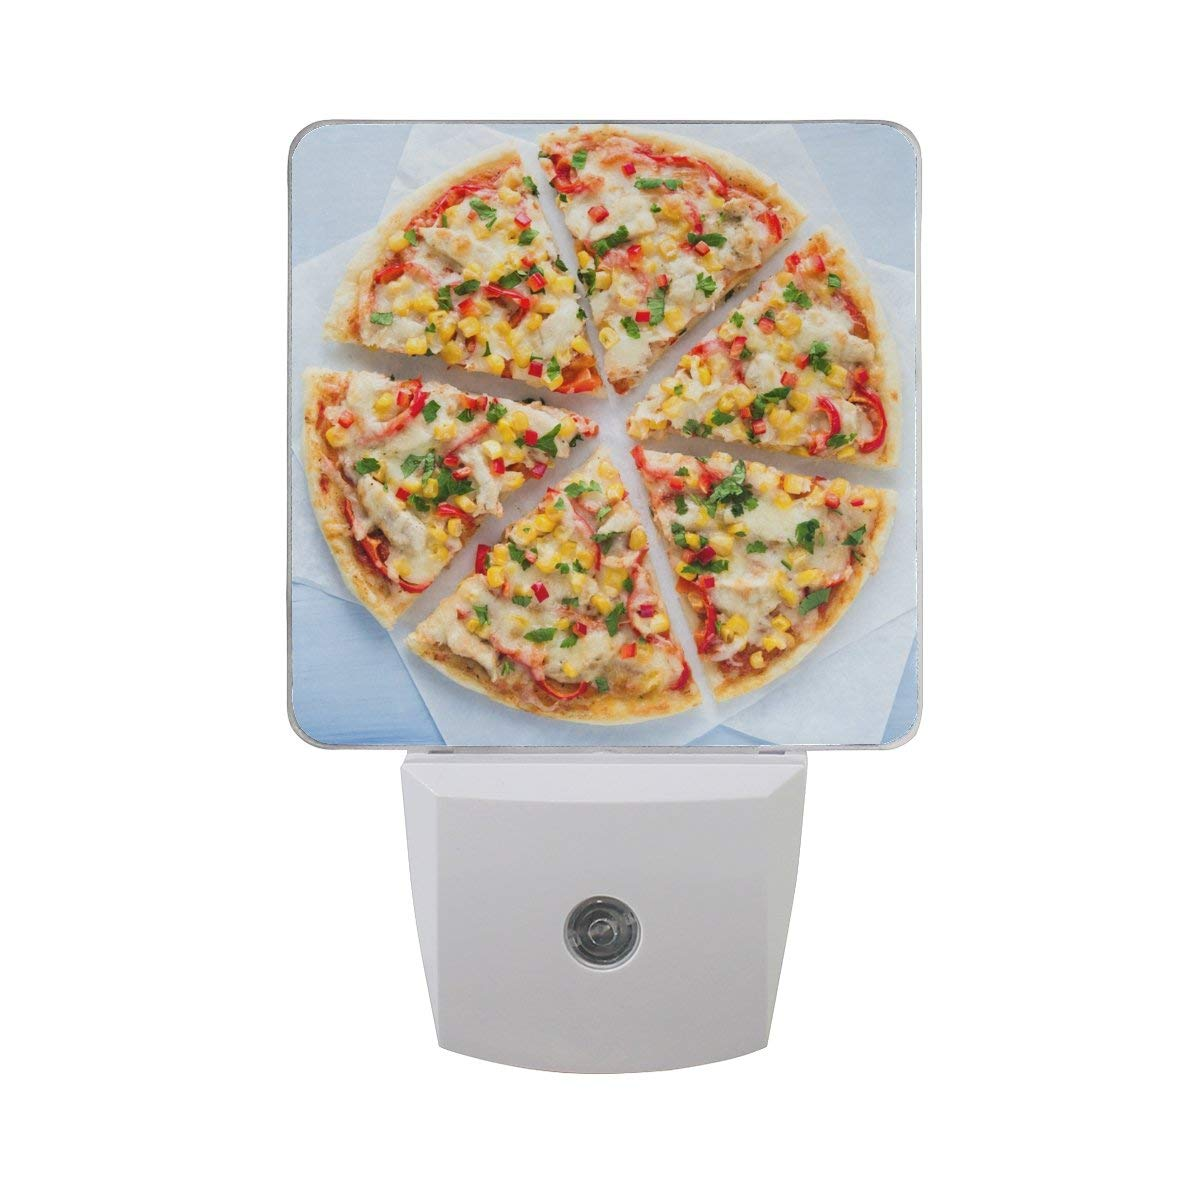 Naanle Set of 2 Colorful Italian Pizza Slice With Cheese Chicken Sweet Corn Pepper Auto Sensor LED Dusk To Dawn Night Light Plug In Indoor for Adults